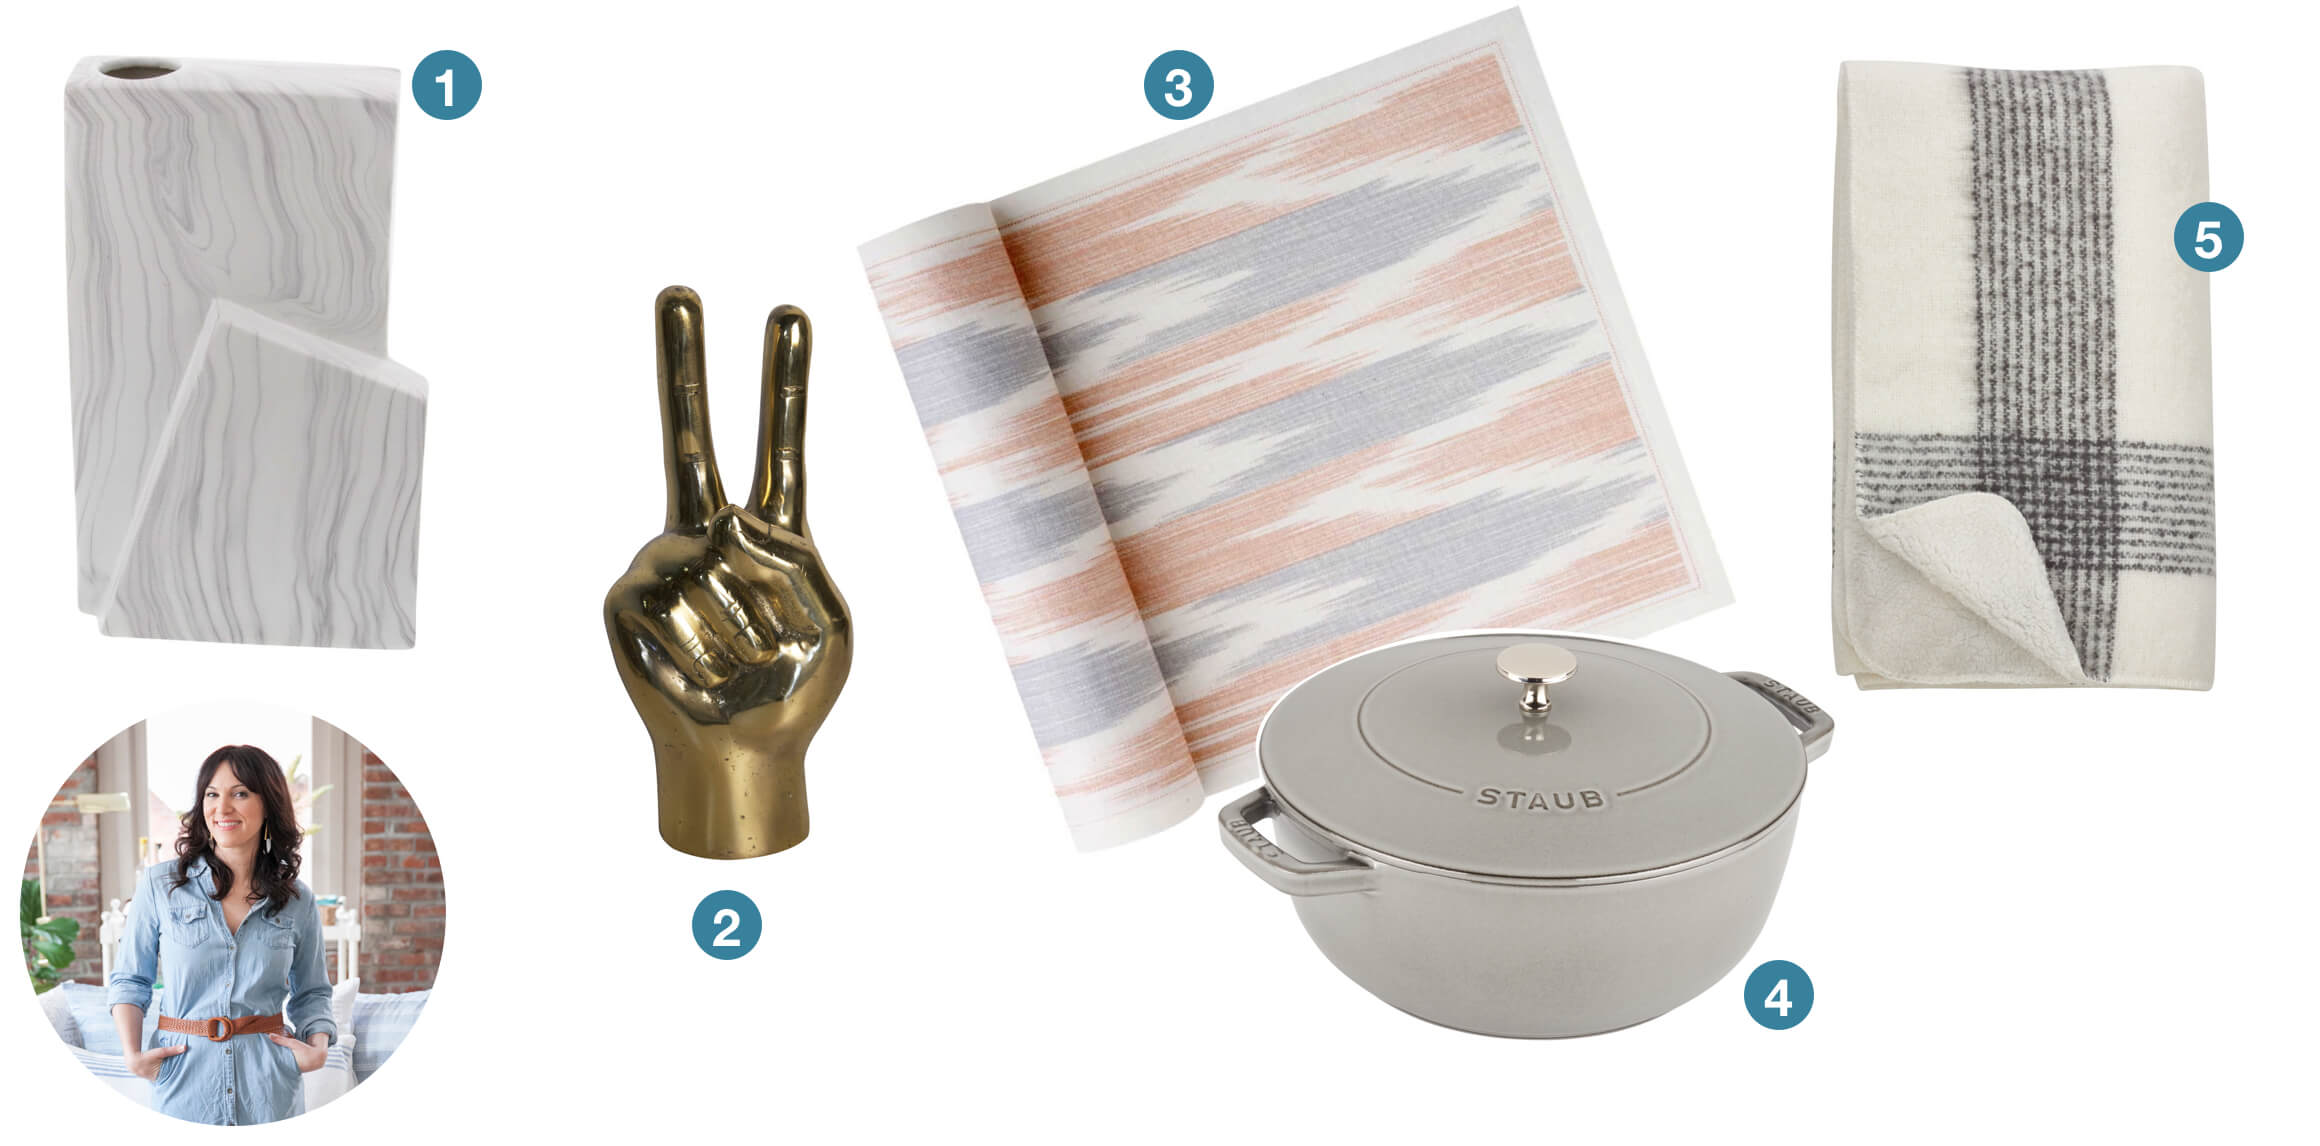 A grey vase, brass hands in a peace sign, ikat napkins, grey castiron skillet, and a plaid throw blanket. These are great gift ideas submitted from design blogger coco + kelley.